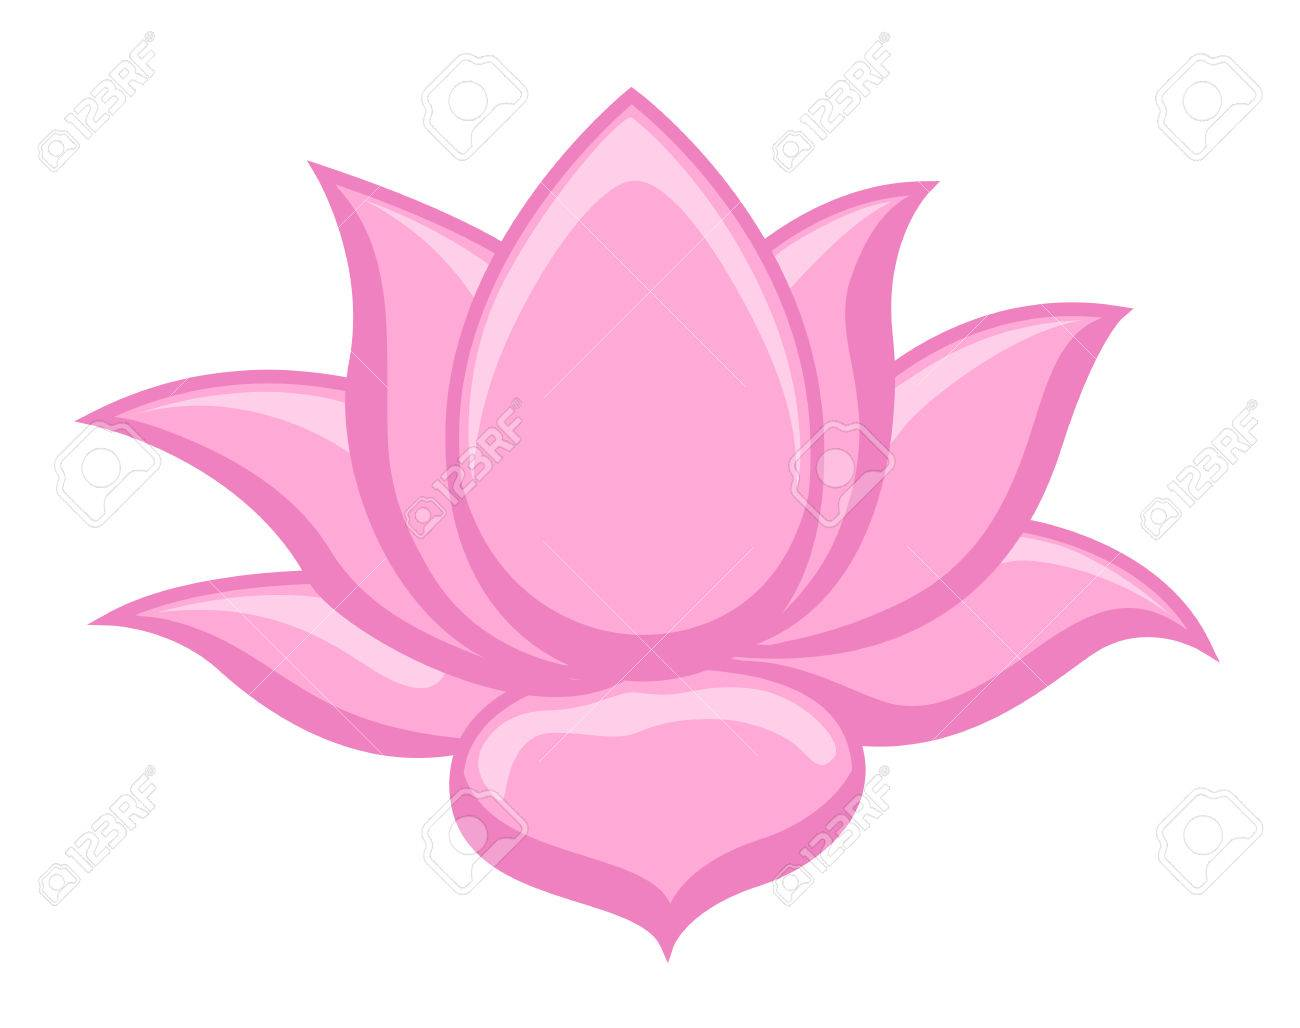 Lotus flower clipart royalty free cliparts vectors and stock lotus flower clipart stock vector 41847546 izmirmasajfo